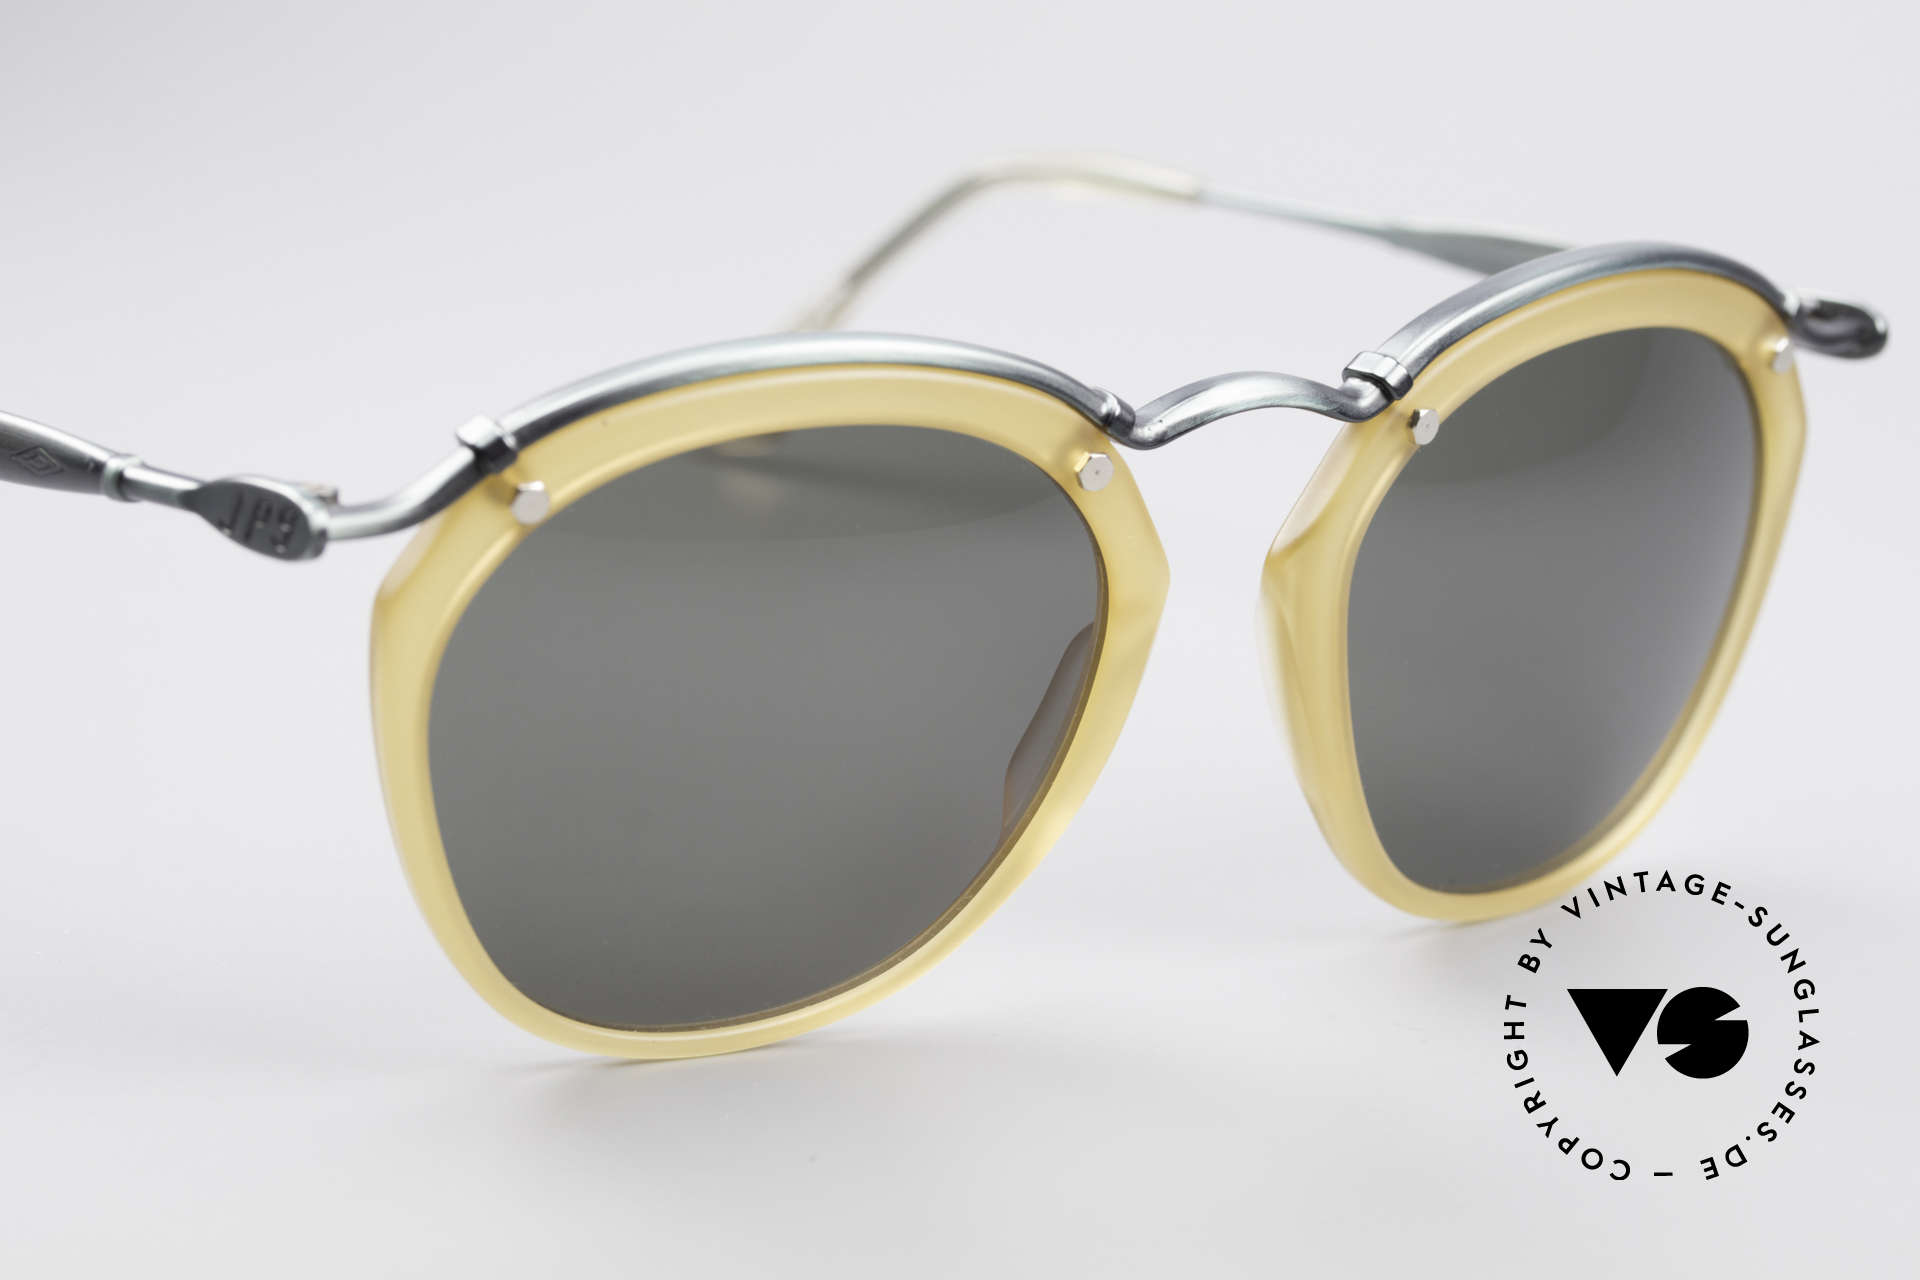 Jean Paul Gaultier 56-1273 Panto Style Sunglasses, never worn (like all our unique vintage glasses), Made for Men and Women